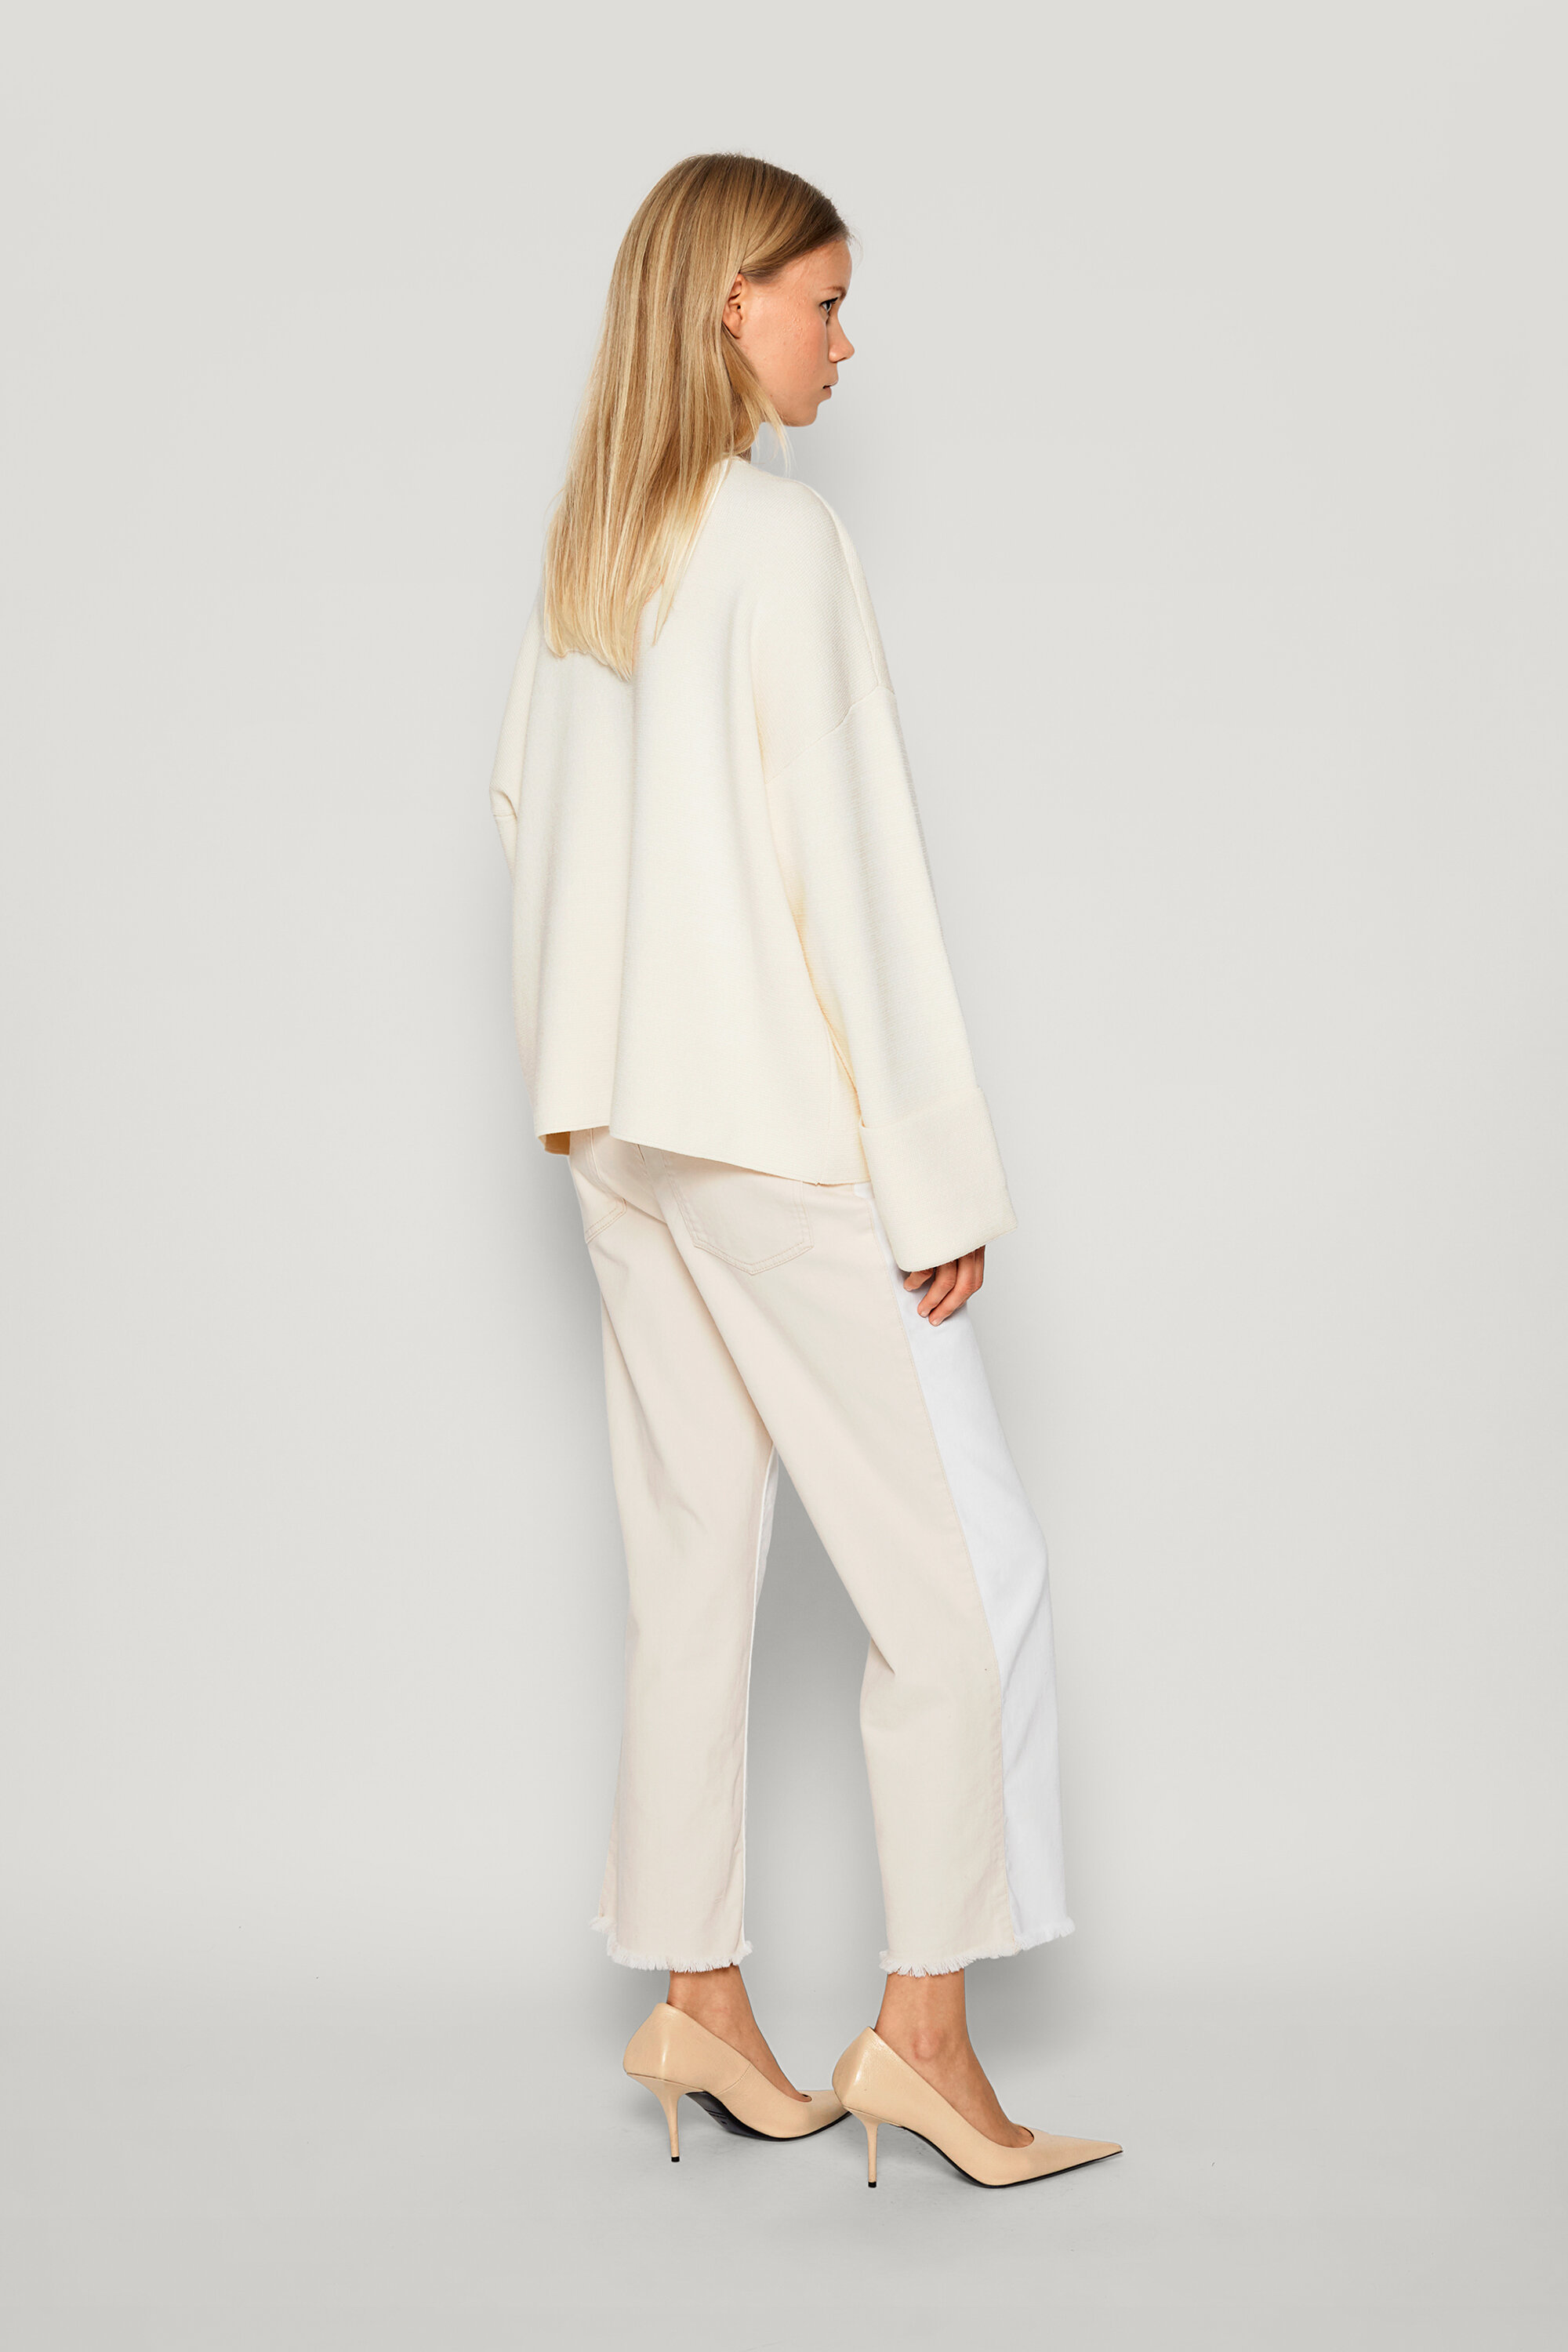 Coalbee Sweater Creamy Eggnog This soft, thick-knit jumper features a deep V-neck and dipped hem - detail image